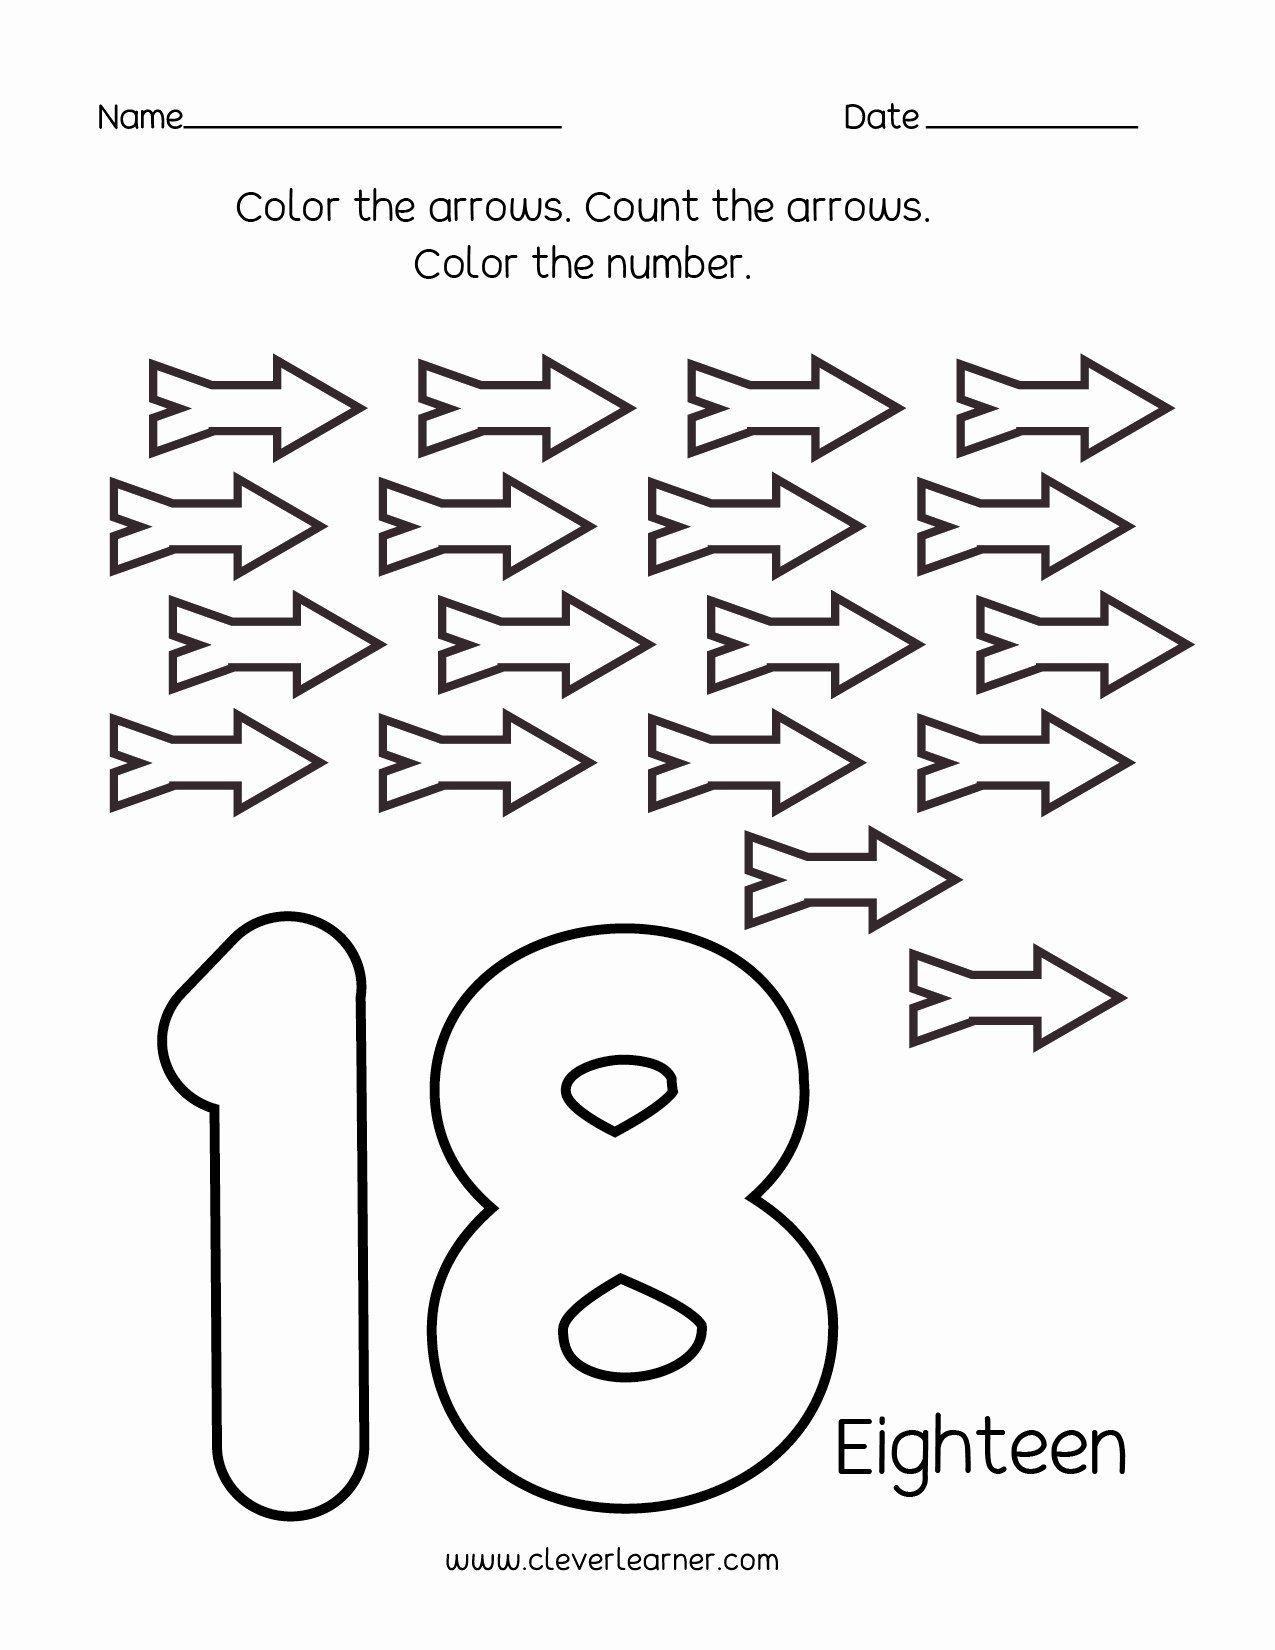 Numbers Worksheets for Preschoolers Lovely Number Writing Counting and Identification Printable